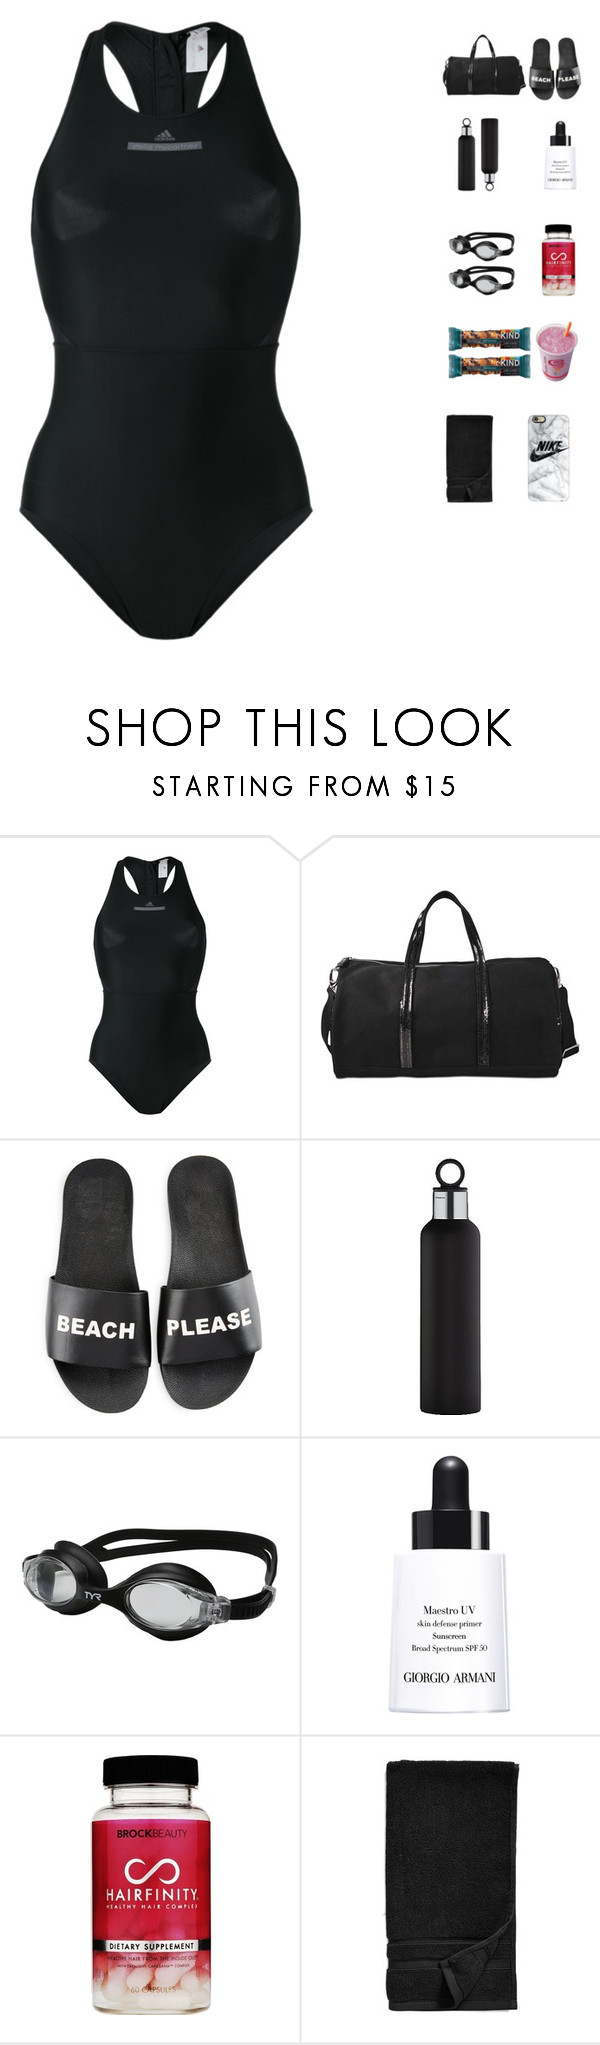 """""""5774"""" by tiffanyelinor ❤ liked on Polyvore featuring adidas, Vanessa Bruno, Schutz, blomus, TYR, Giorgio Armani, FRUIT, Waterworks and Casetify"""